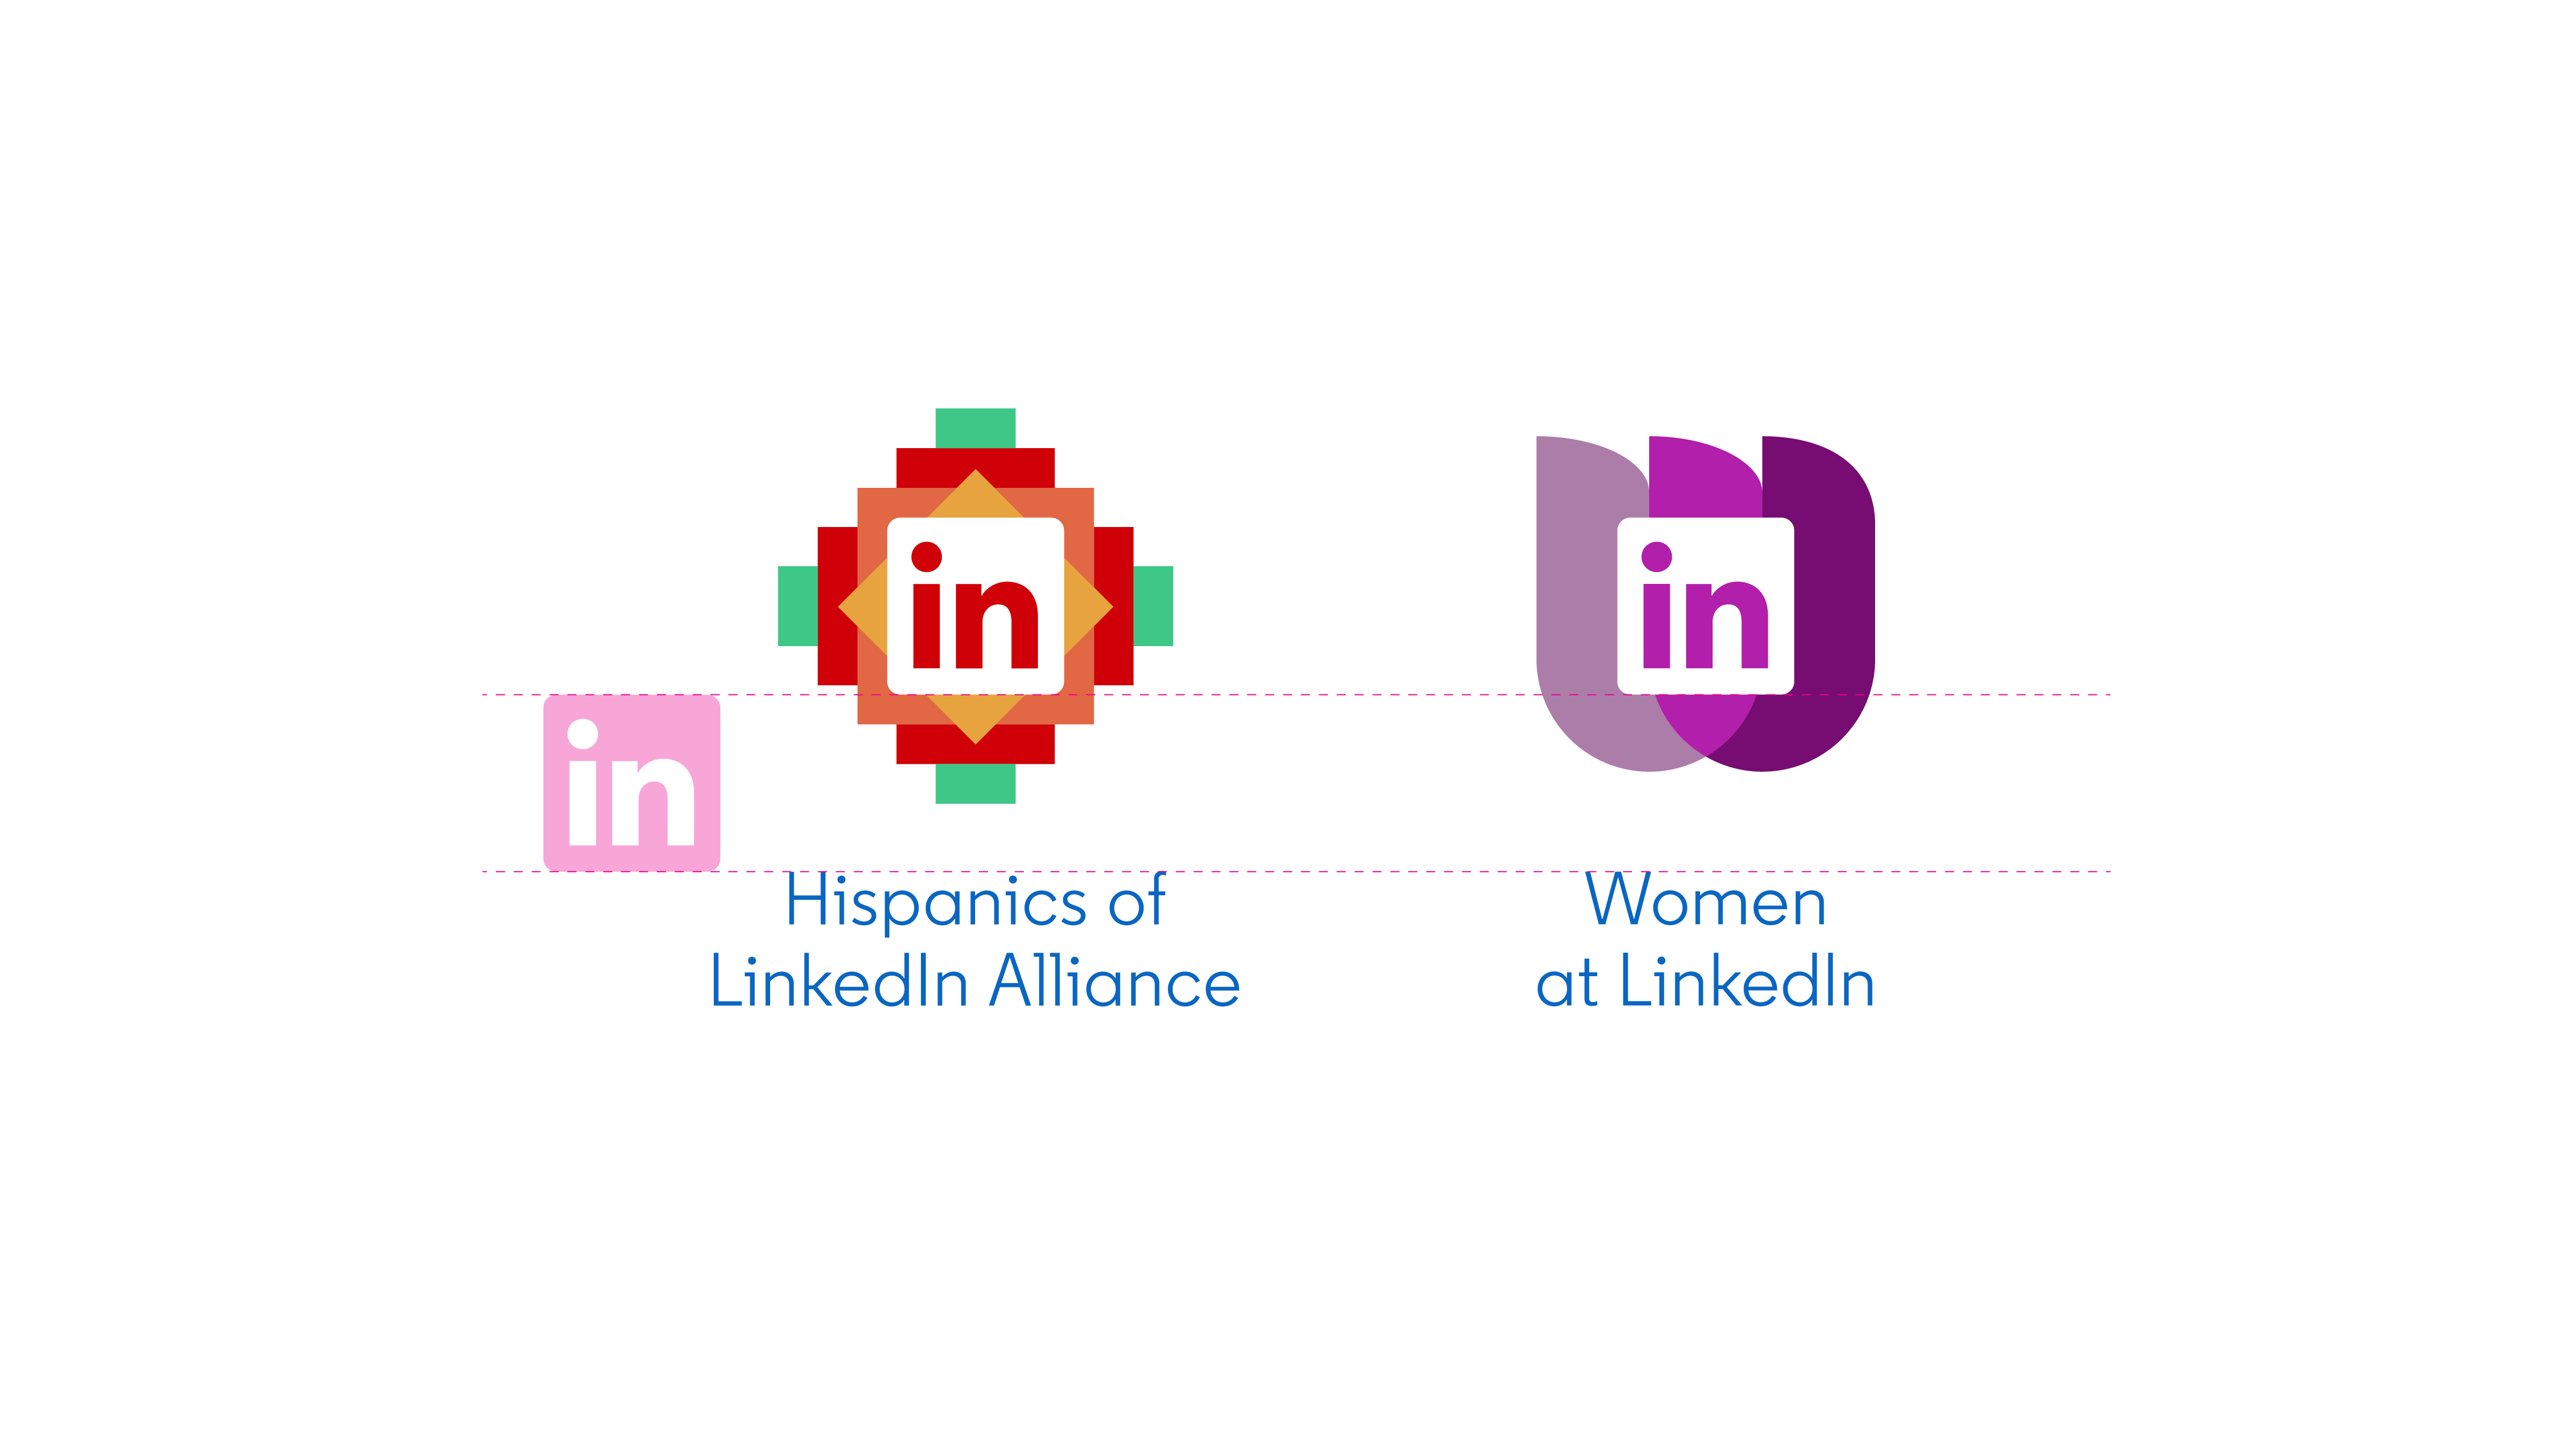 LinkedIn Employee Resource Group brand guidelines page